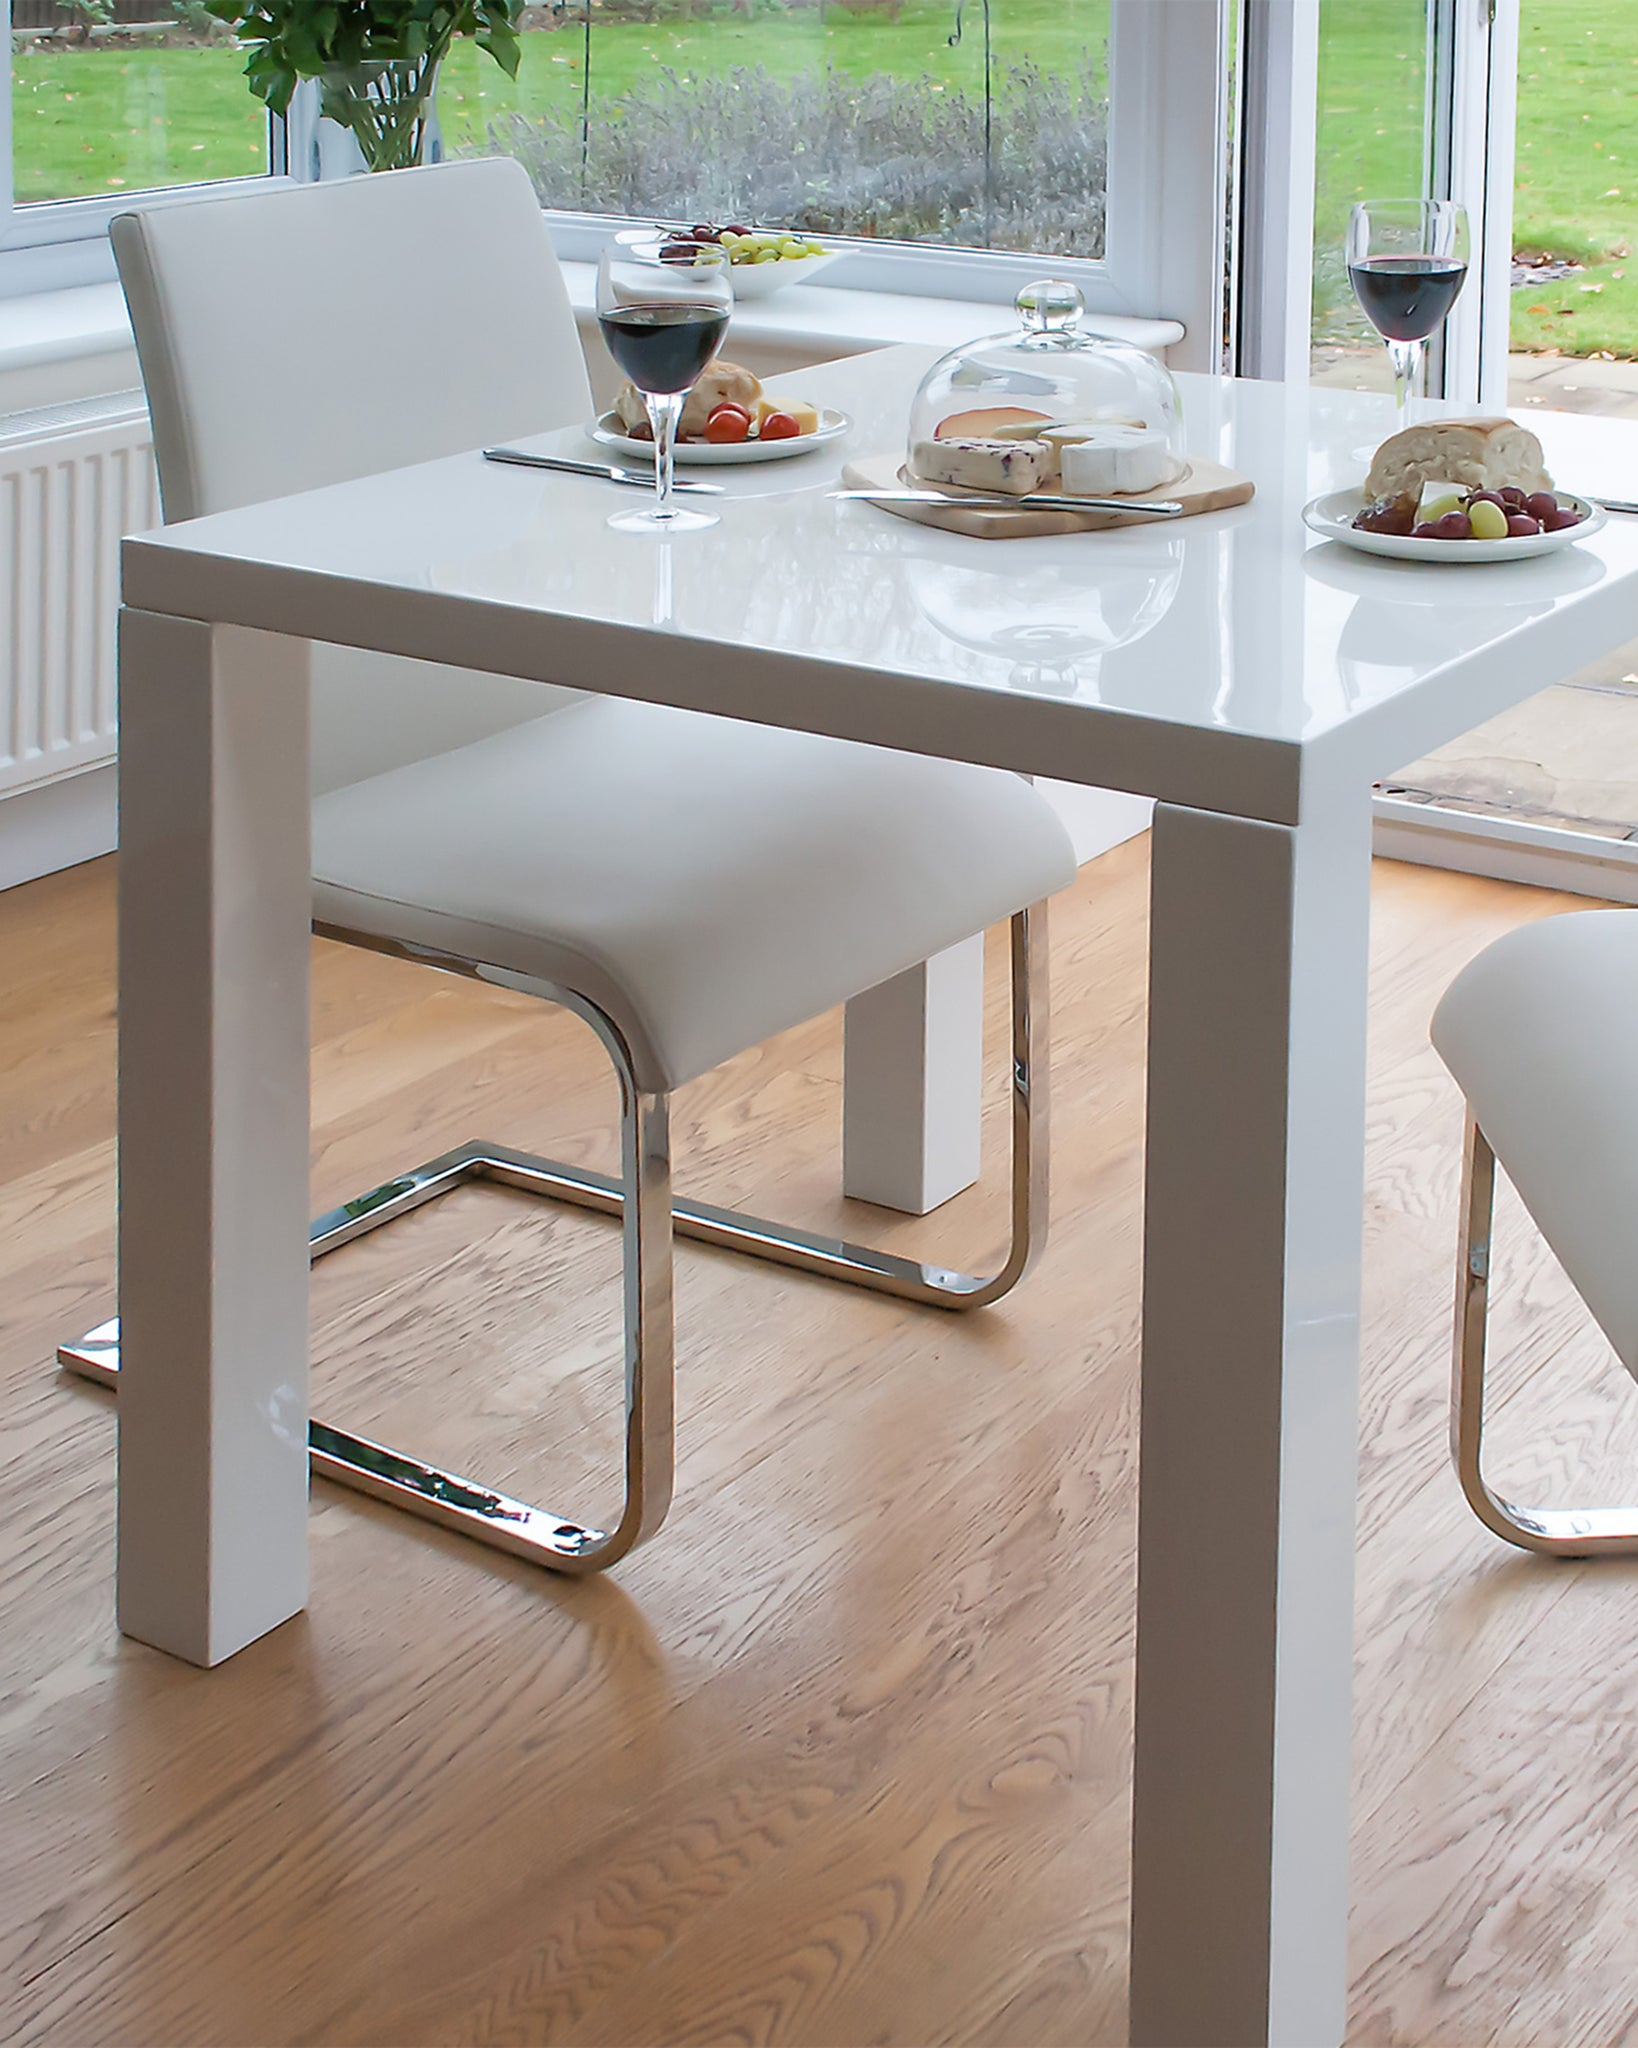 2 Seater Dining Sets Small Compact Dining Sets From Danetti